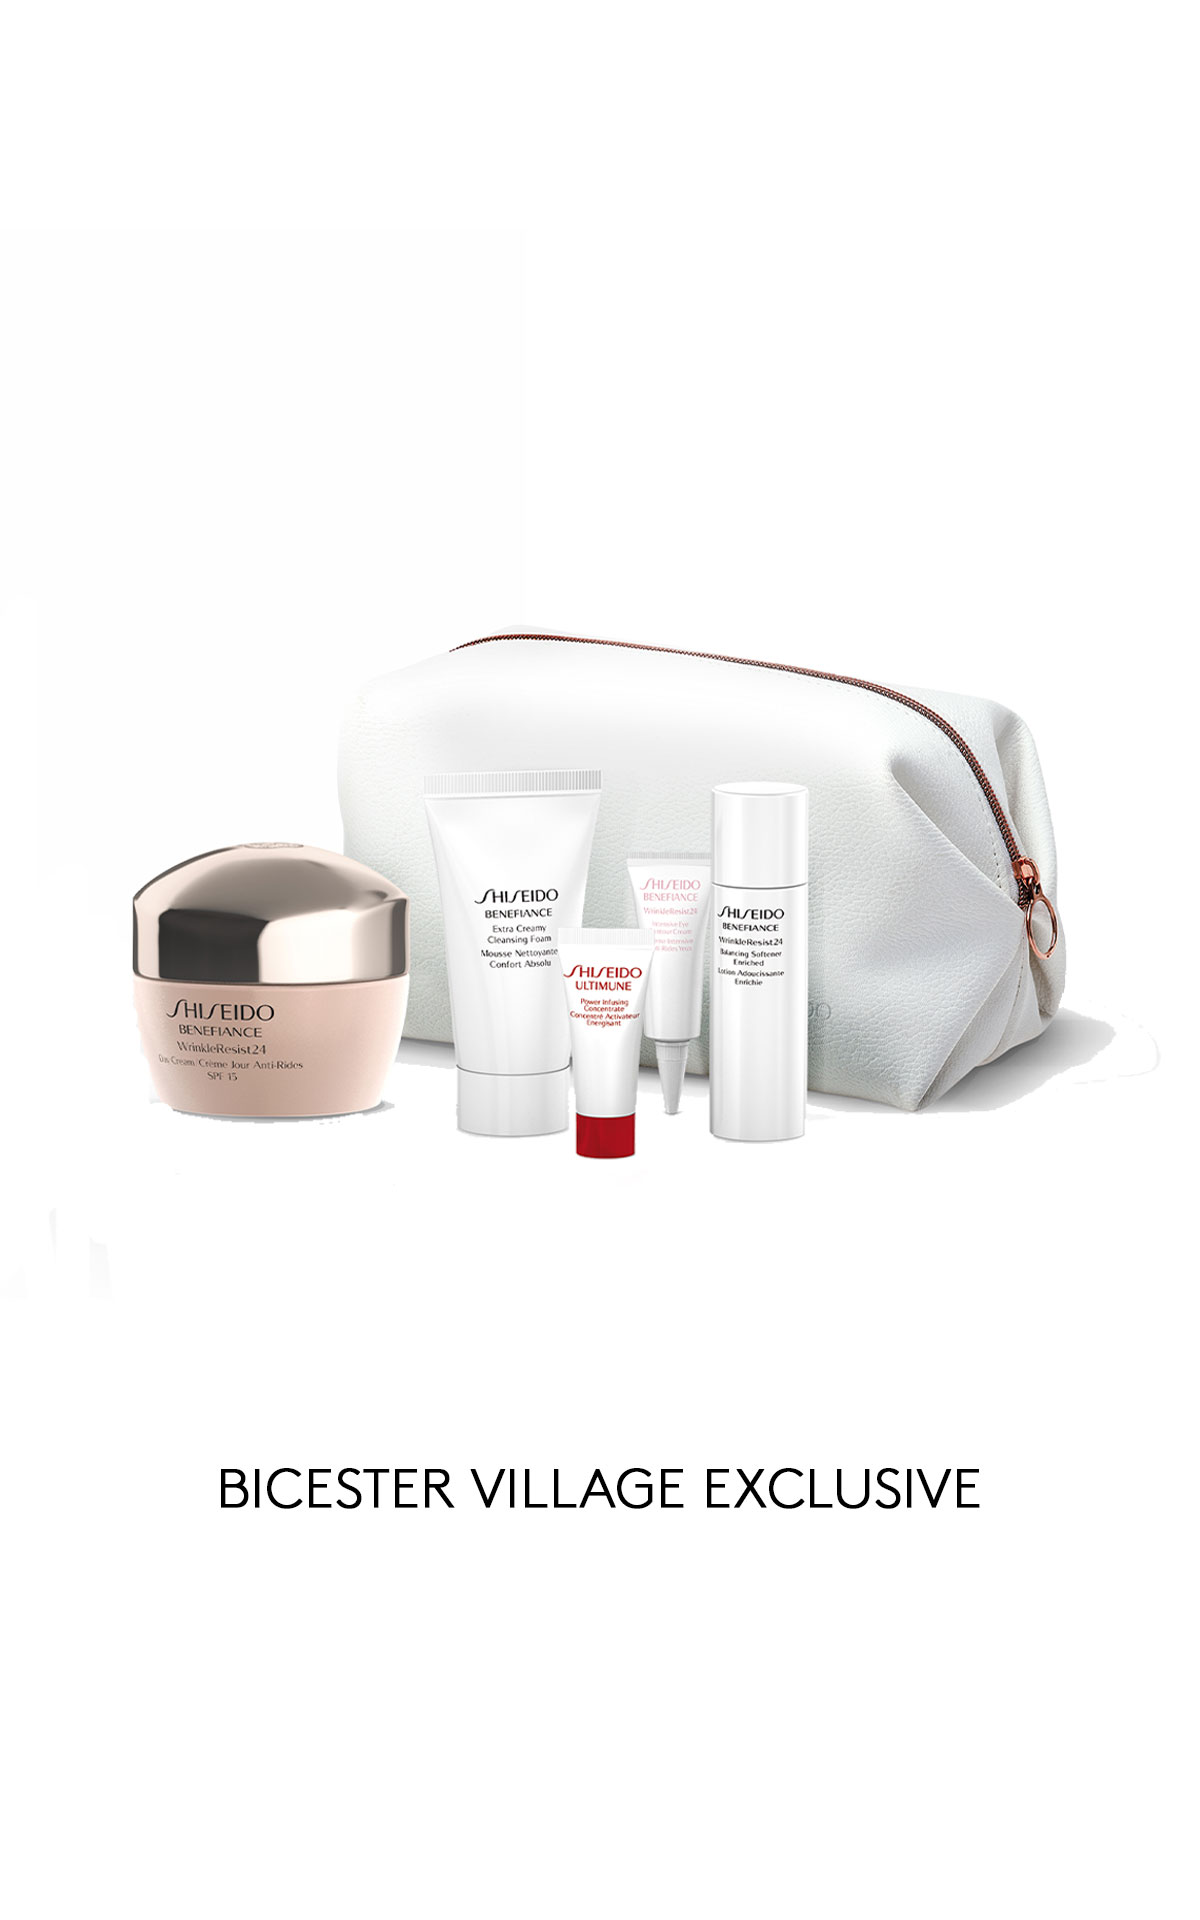 Beaute Prestige International Shiseido Benefiance wrinkleresist 24 pouch set from Bicester Village